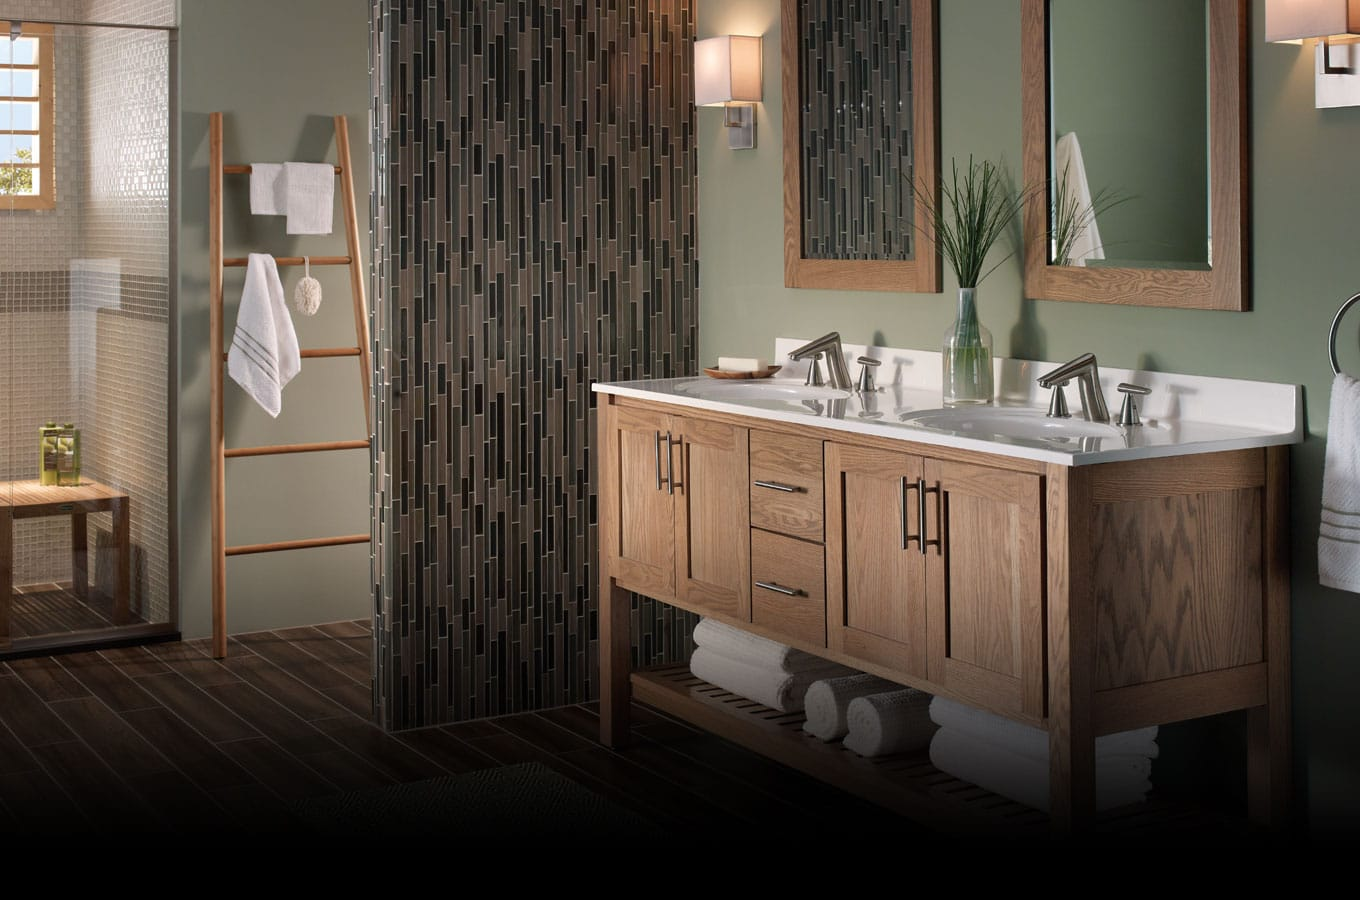 Custom Bathroom Vanities York Region kitchen cabinets, bath vanities, vanity tops, interior & exterior